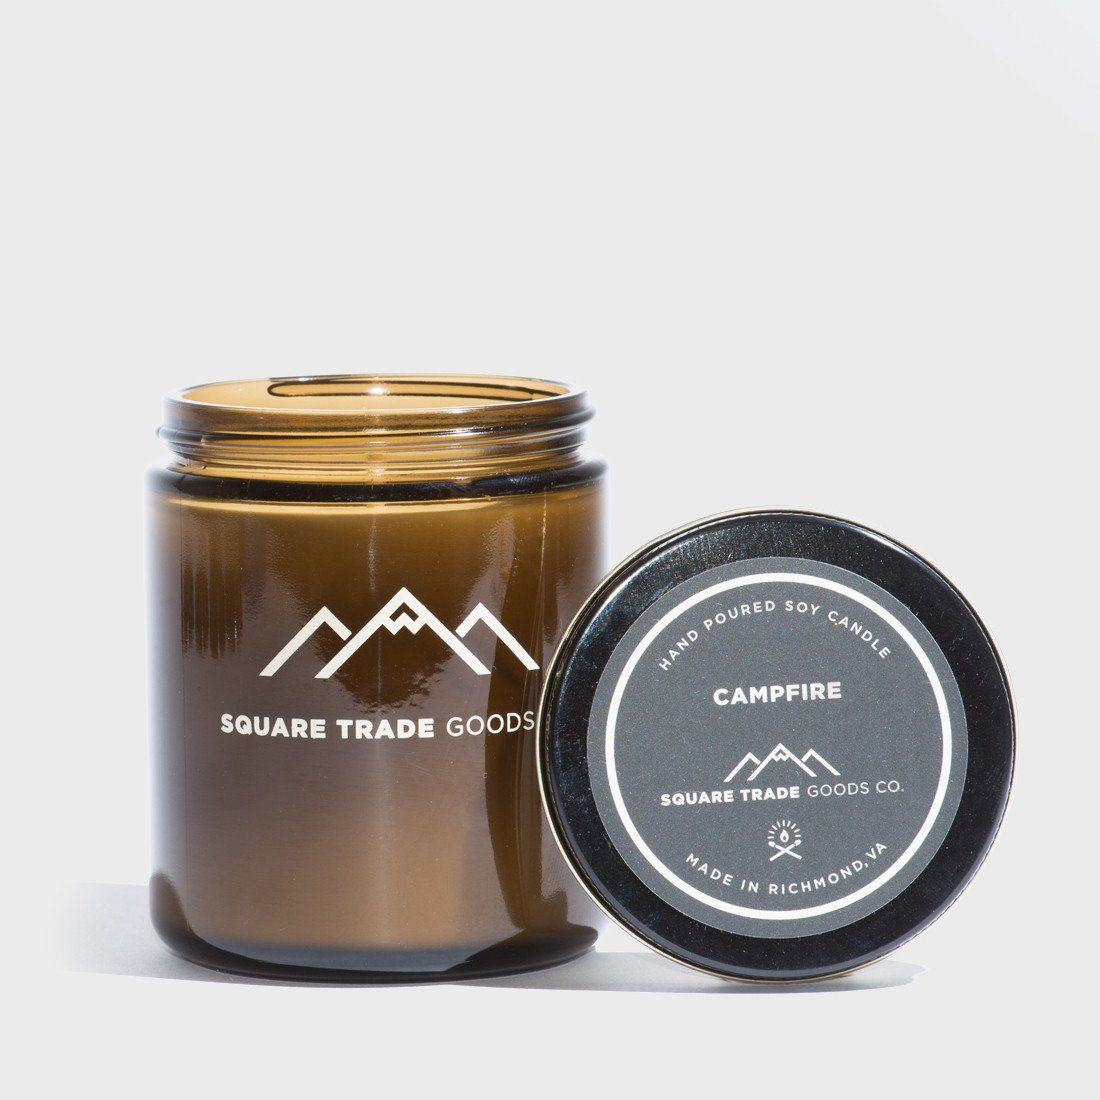 Square Trade Goods Campfire 8 oz